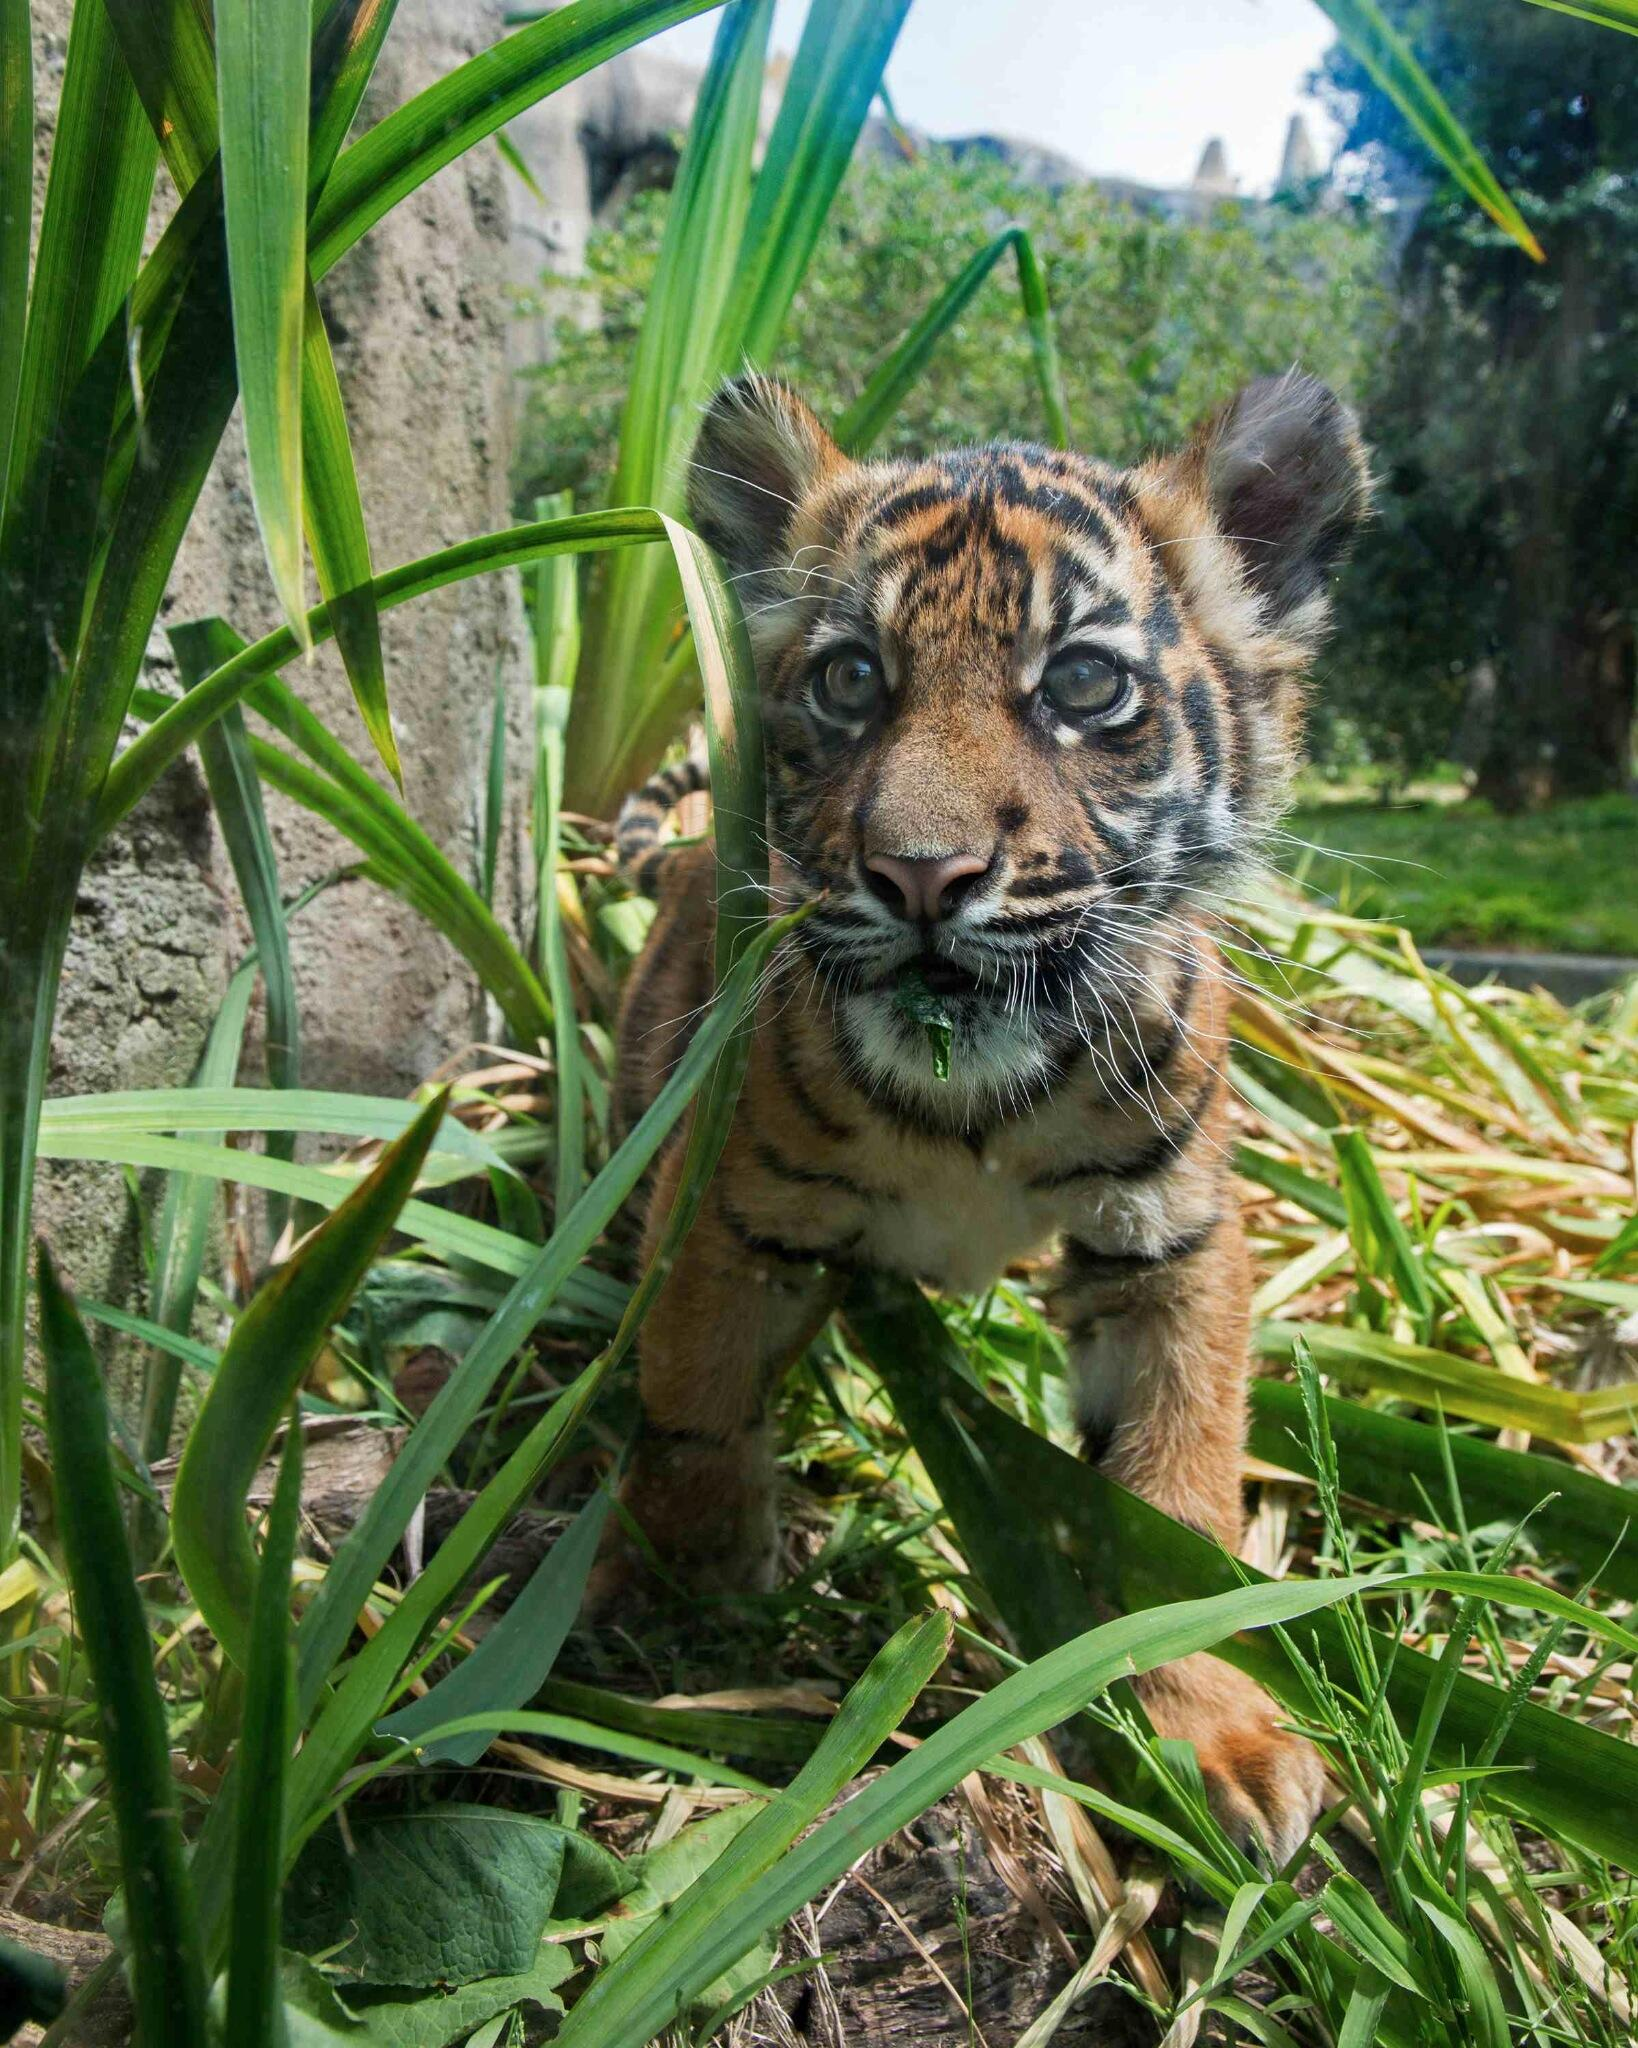 Missing our little tiger cub?  Here's a great new close up shot. Enjoy! #sftigercub #squee #adorable http://t.co/DxiT0Pcd3V